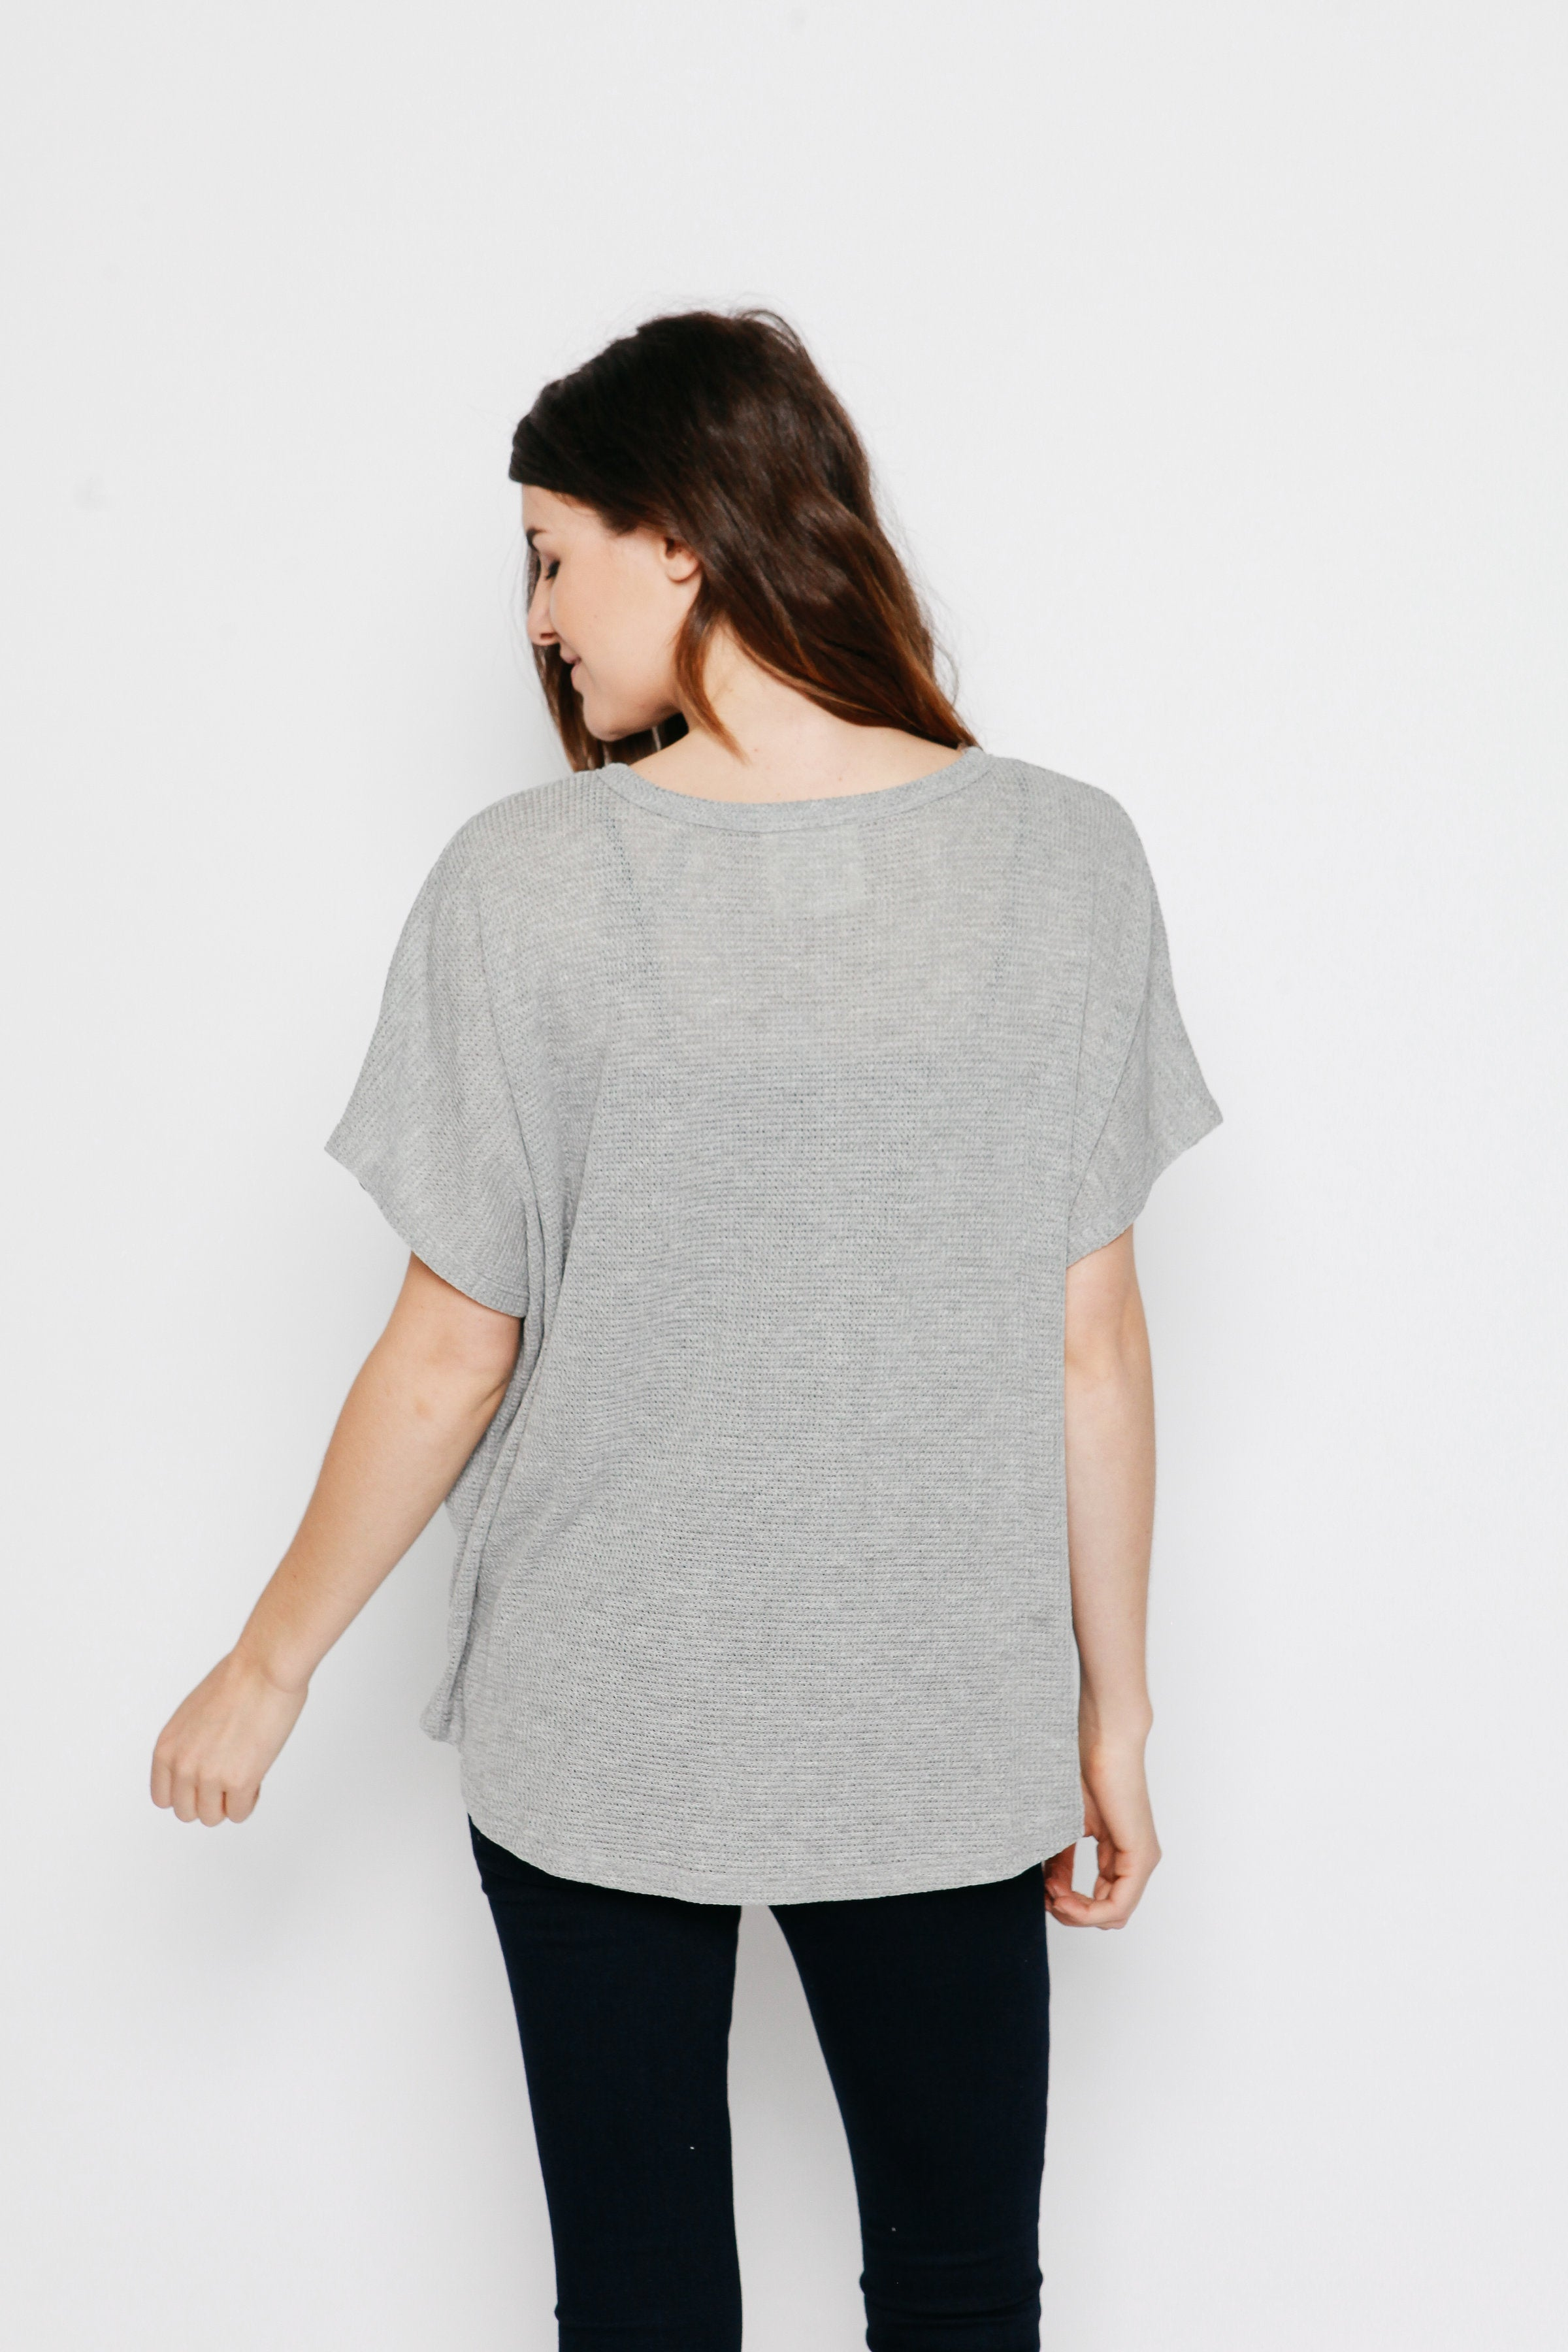 Layla Thermal Top - Heather Grey Top - Vinnie Louise